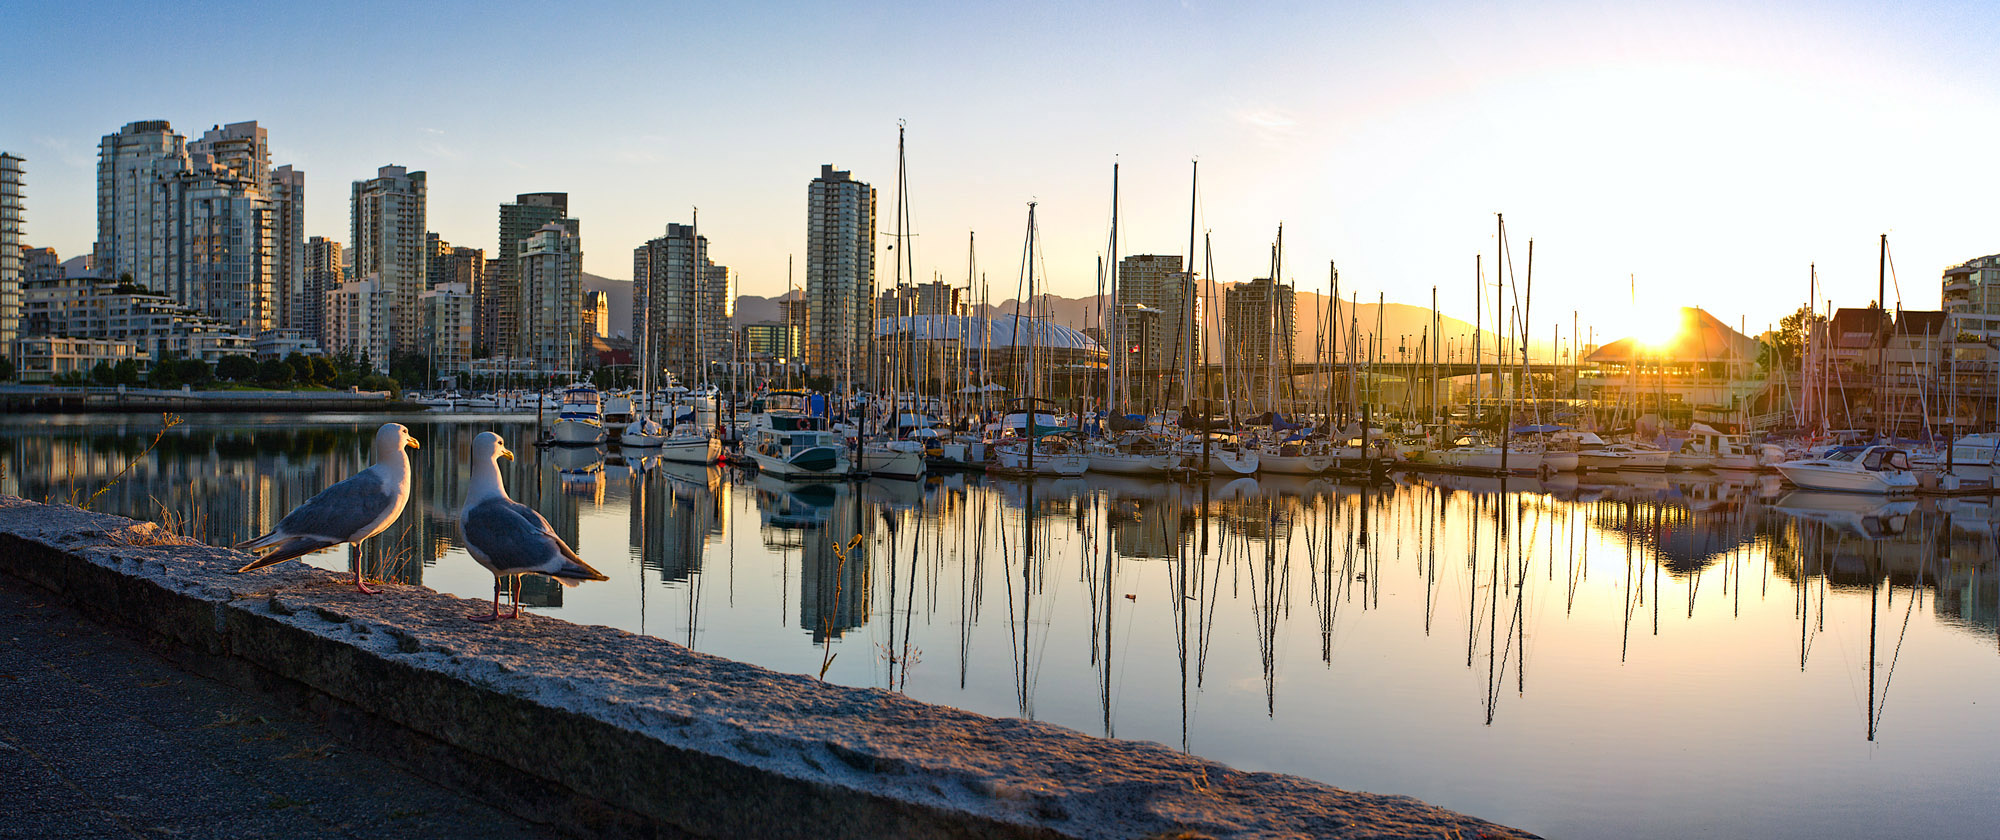 Sunrise on the Seawall near Leg-in-boot Square - False Creek neighburhood